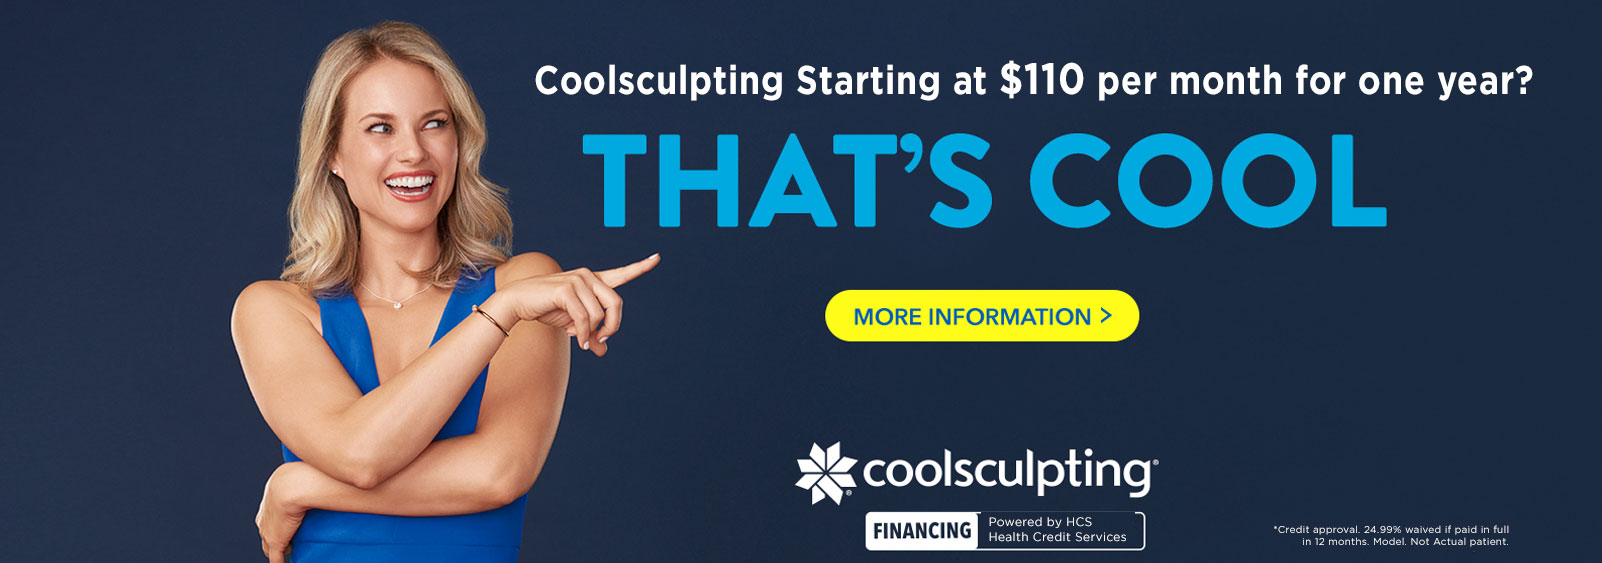 coolsculpting newtown pa bucks county